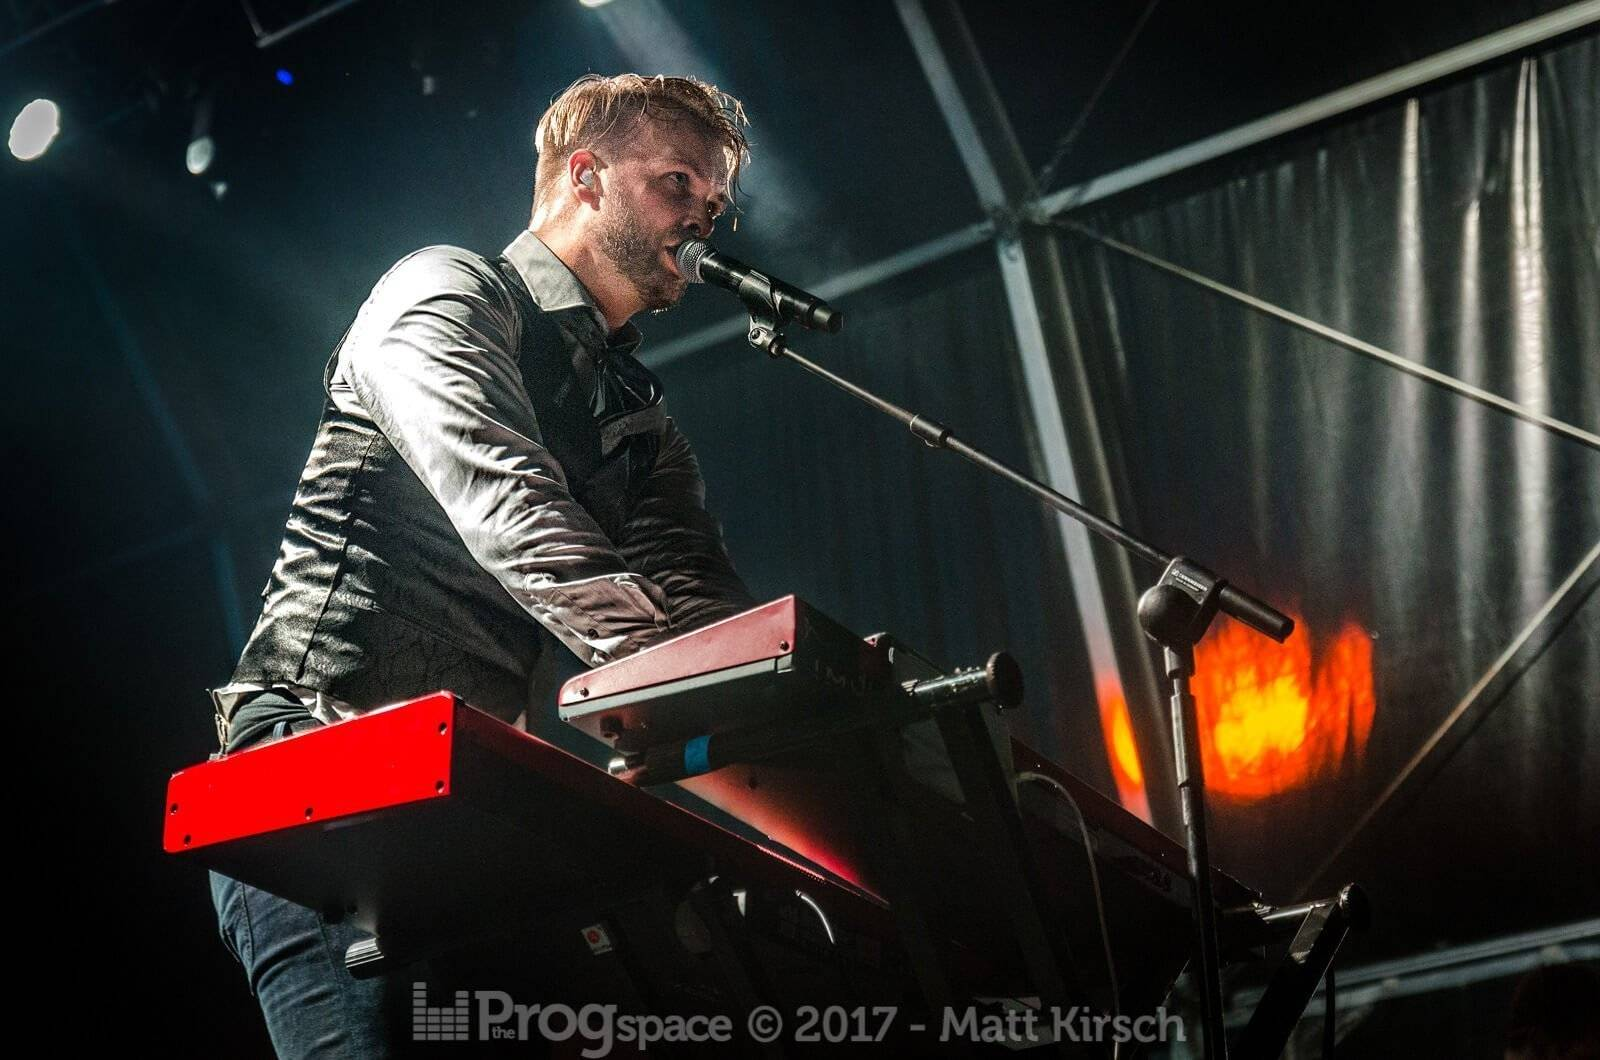 Leprous playing at Be Prog! My Friend 2017